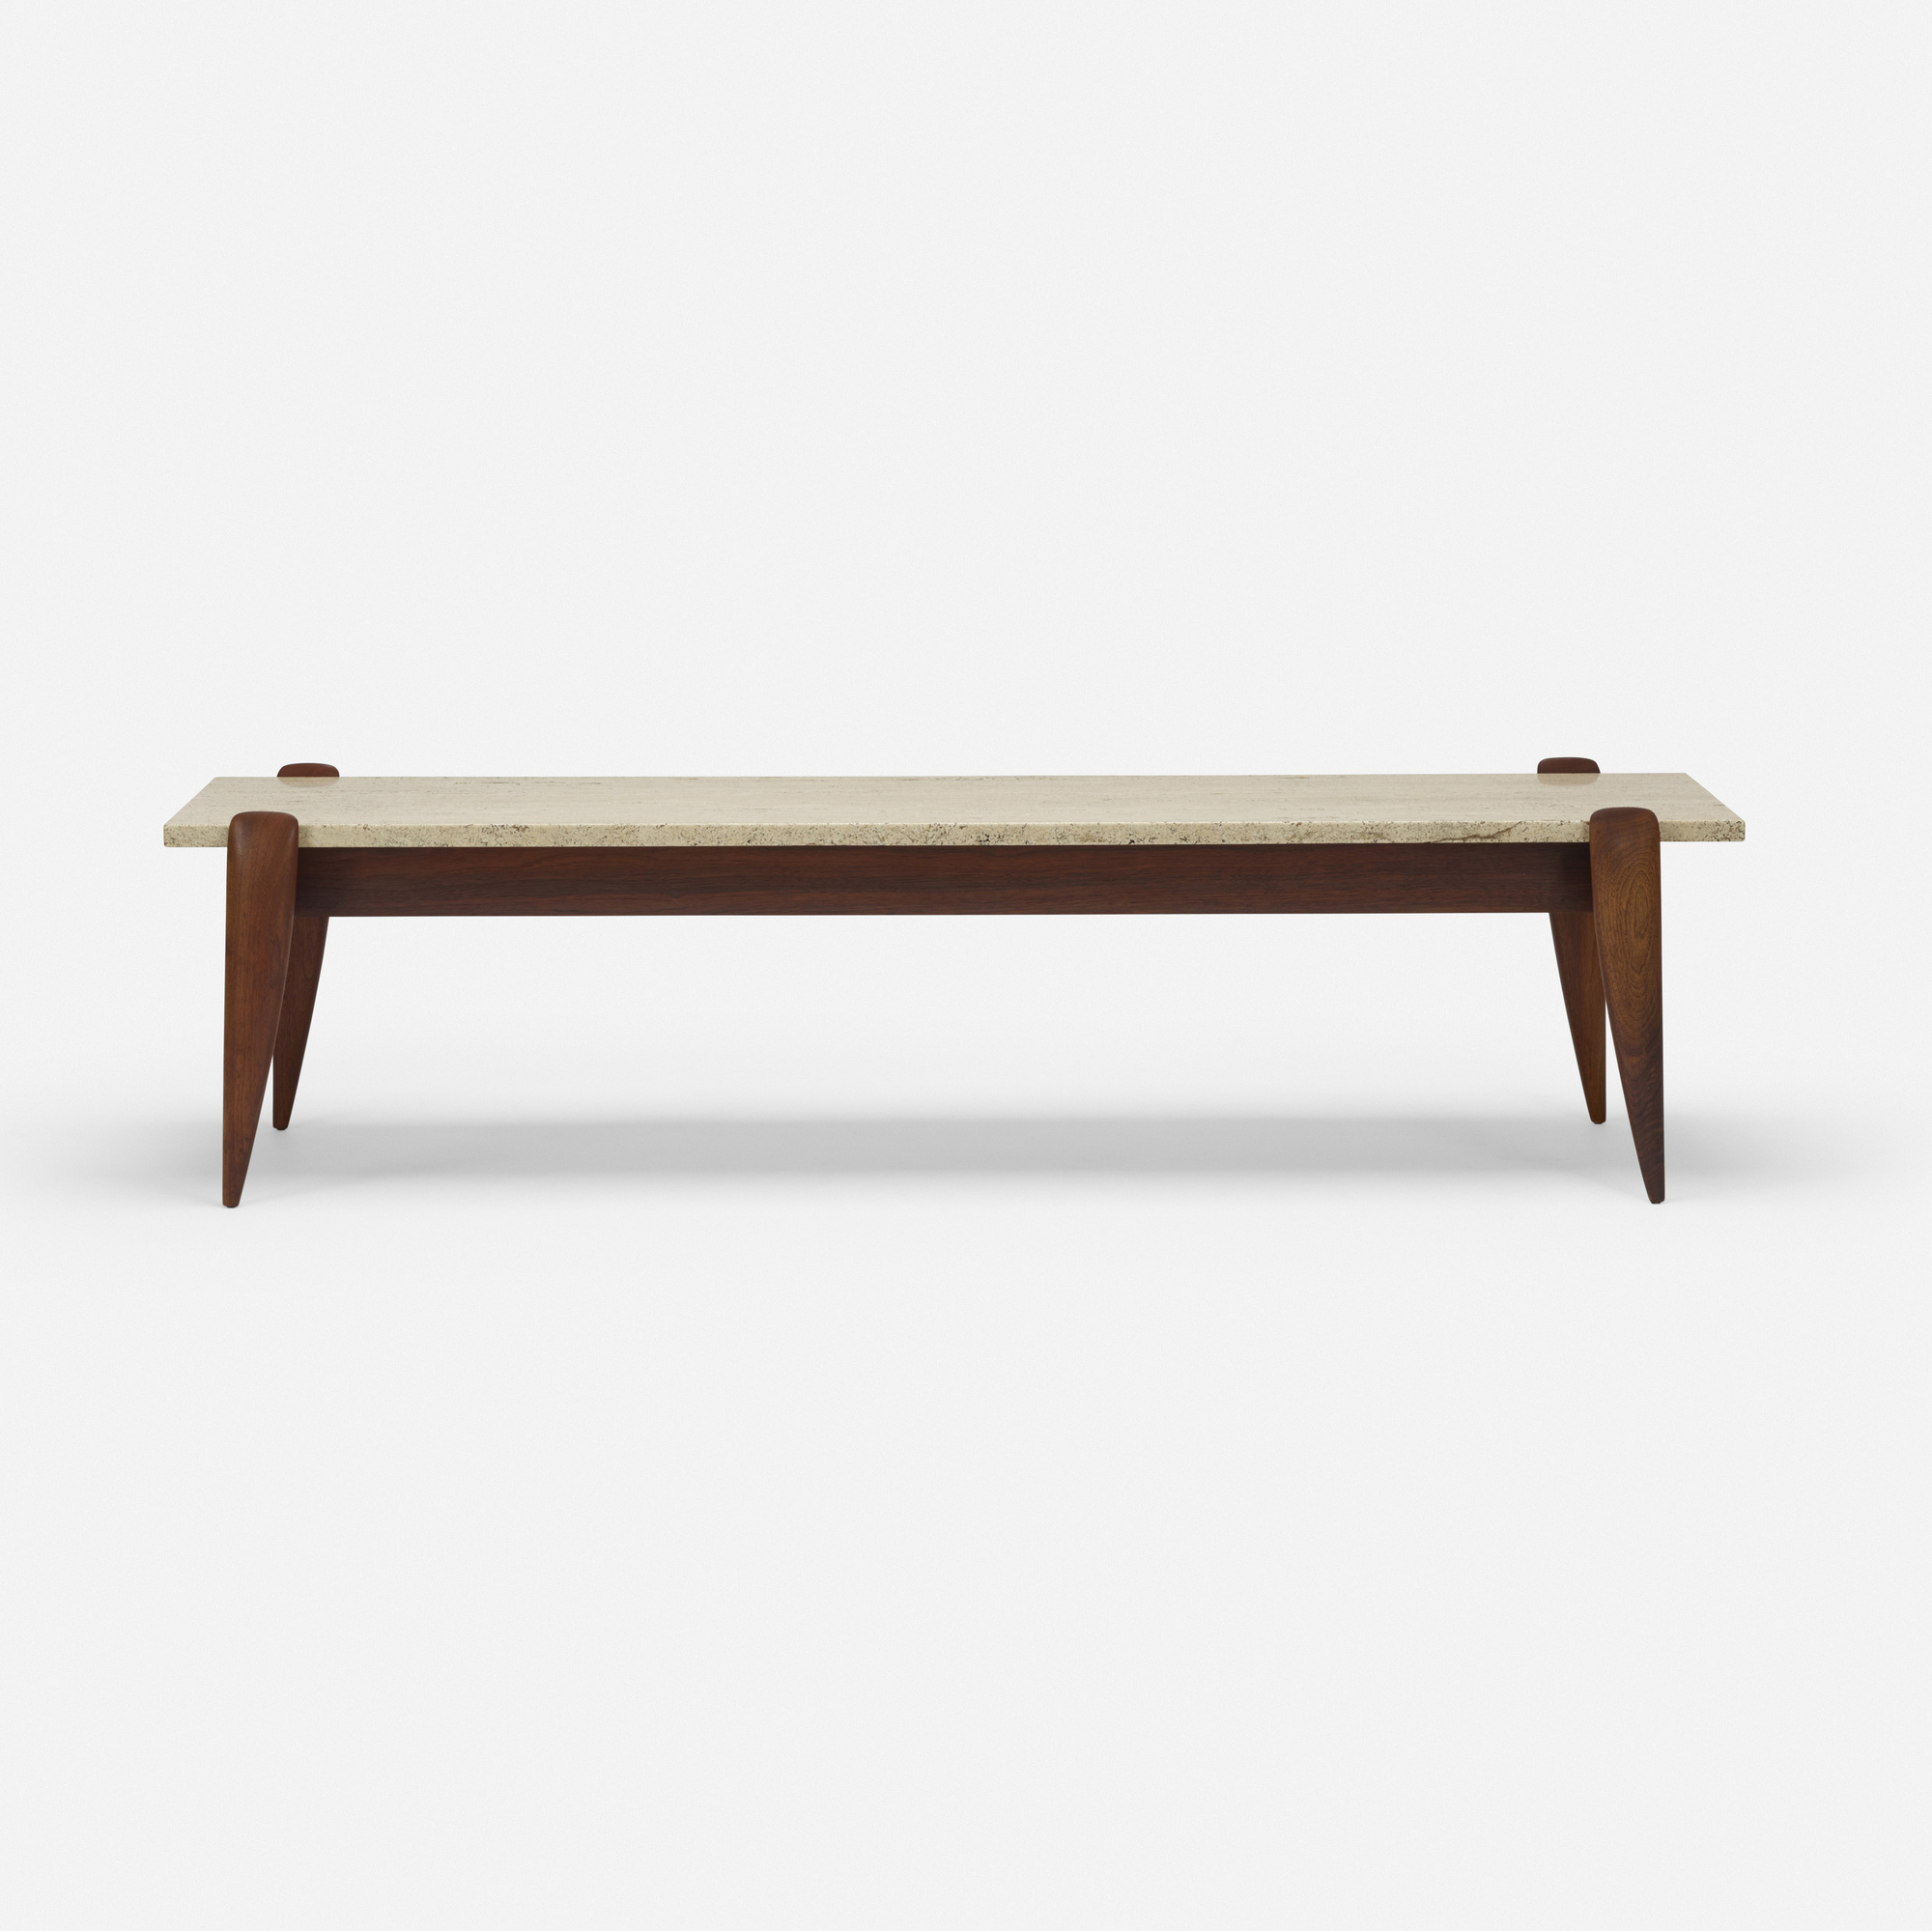 142: Gio Ponti / coffee table (2 of 2)